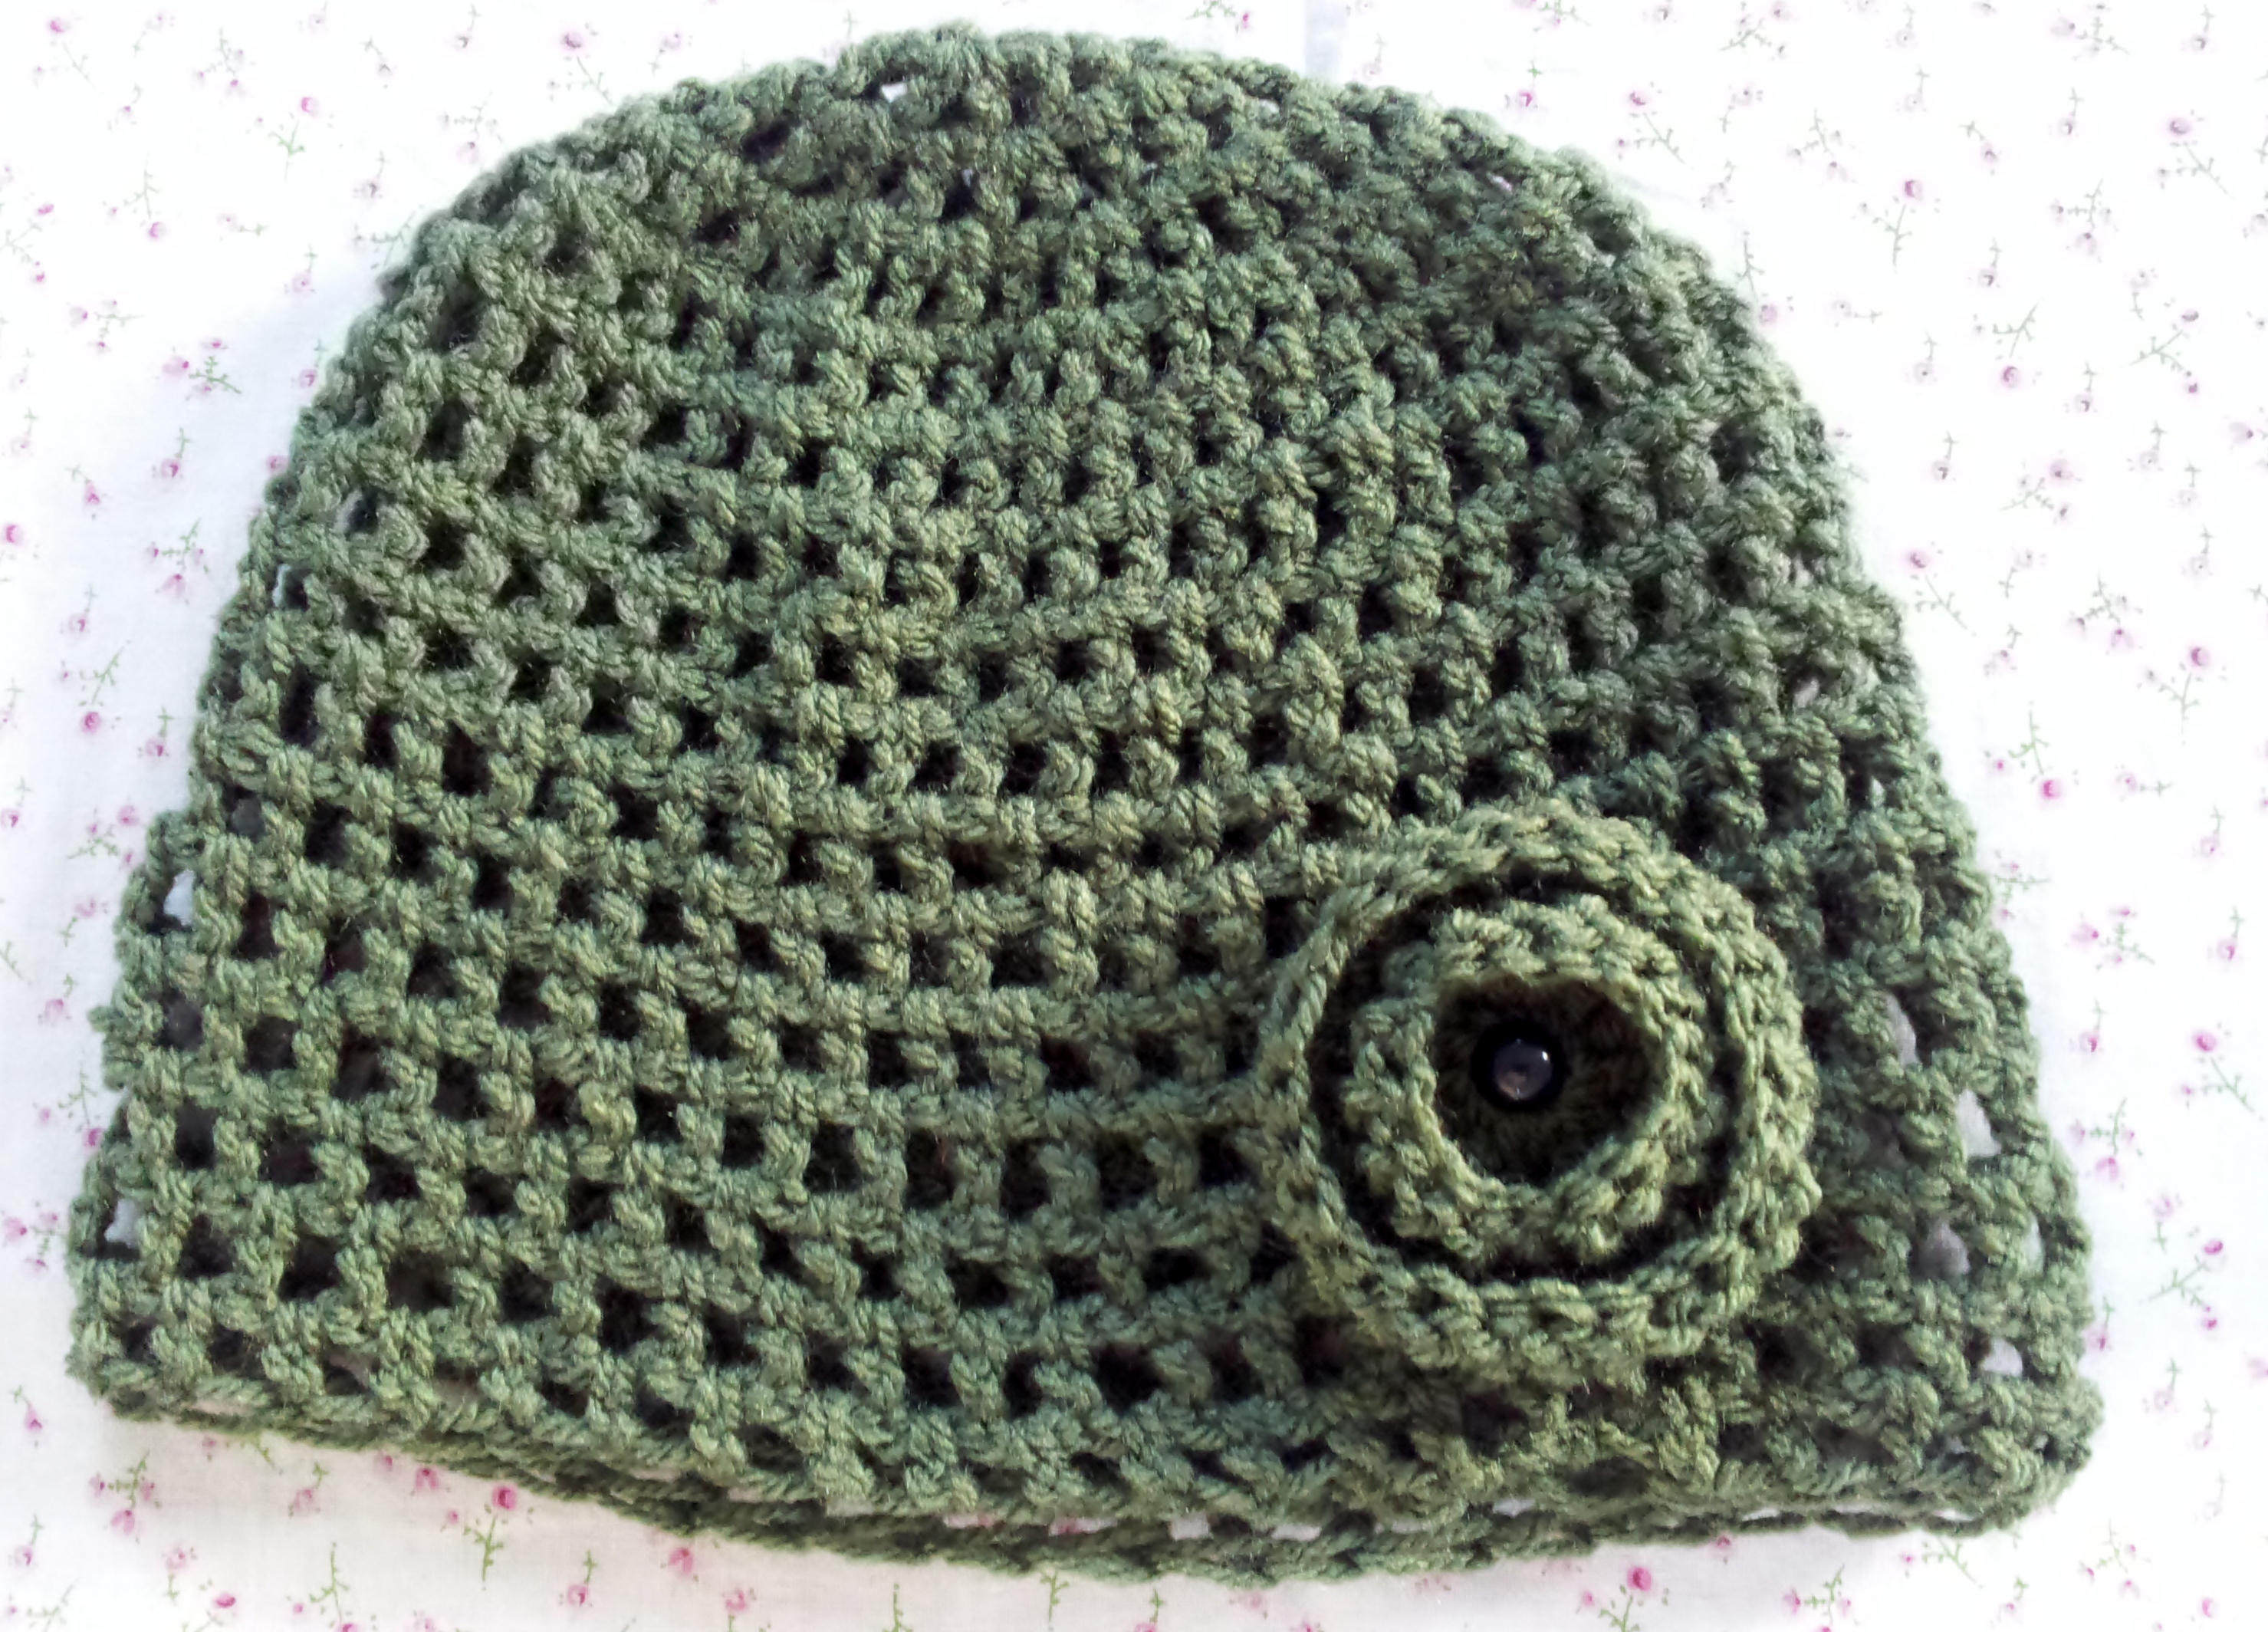 Basic Beginner Crochet Patterns : How to make a Simple Crochet Hat ? Free Pattern ...